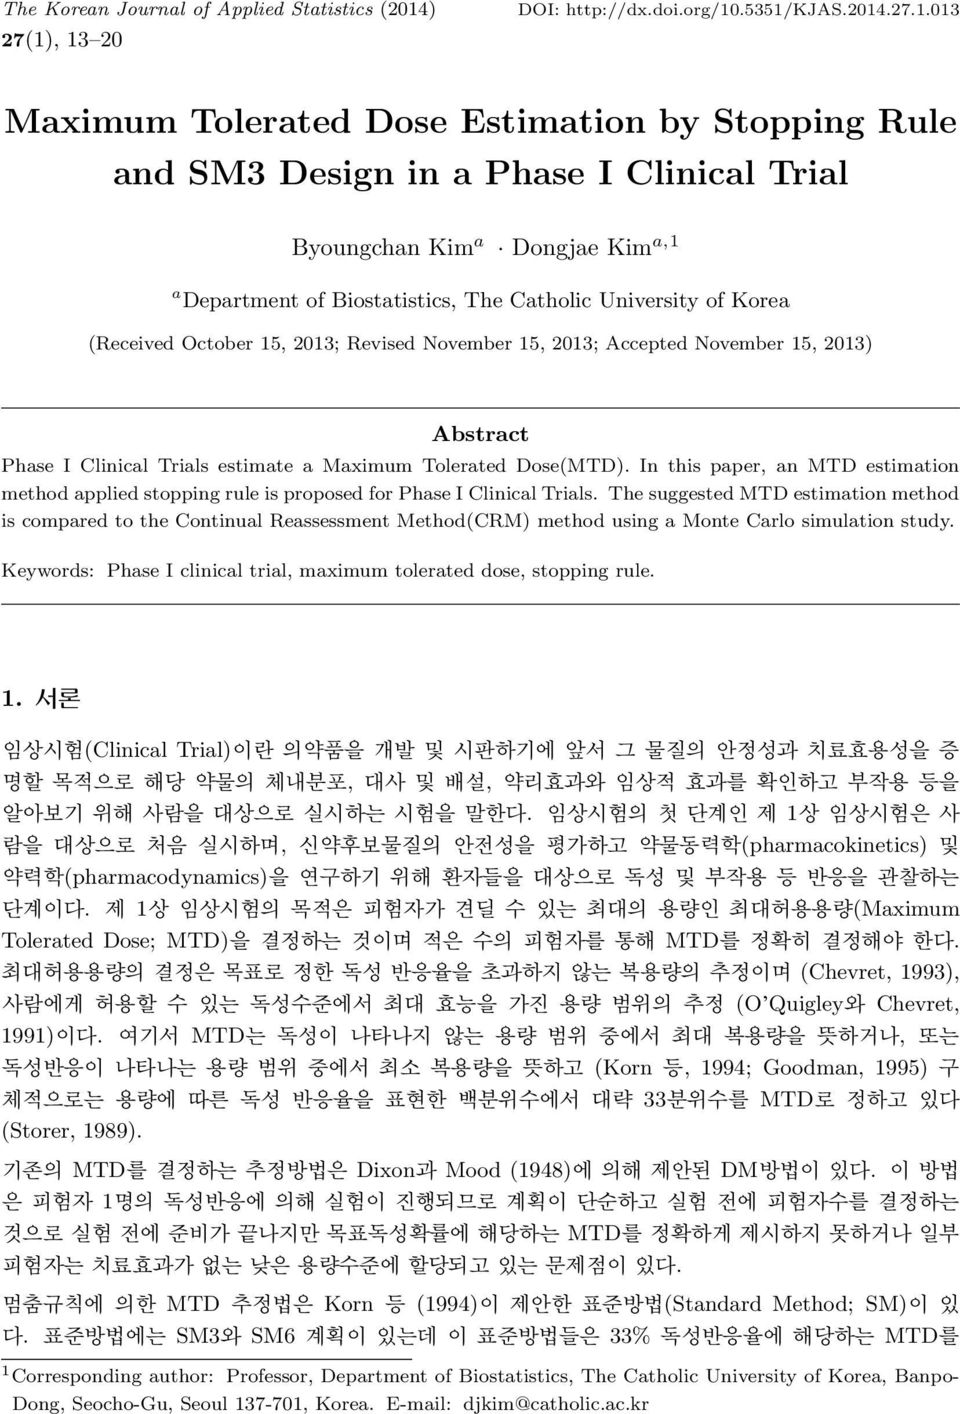 , 13 20 DOI: http://dx.doi.org/10.5351/kjas.2014.27.1.013 Maximum Tolerated Dose Estimation by Stopping Rule and SM3 Design in a Phase I Clinical Trial Byoungchan Kim a Dongjae Kim a,1 a Department